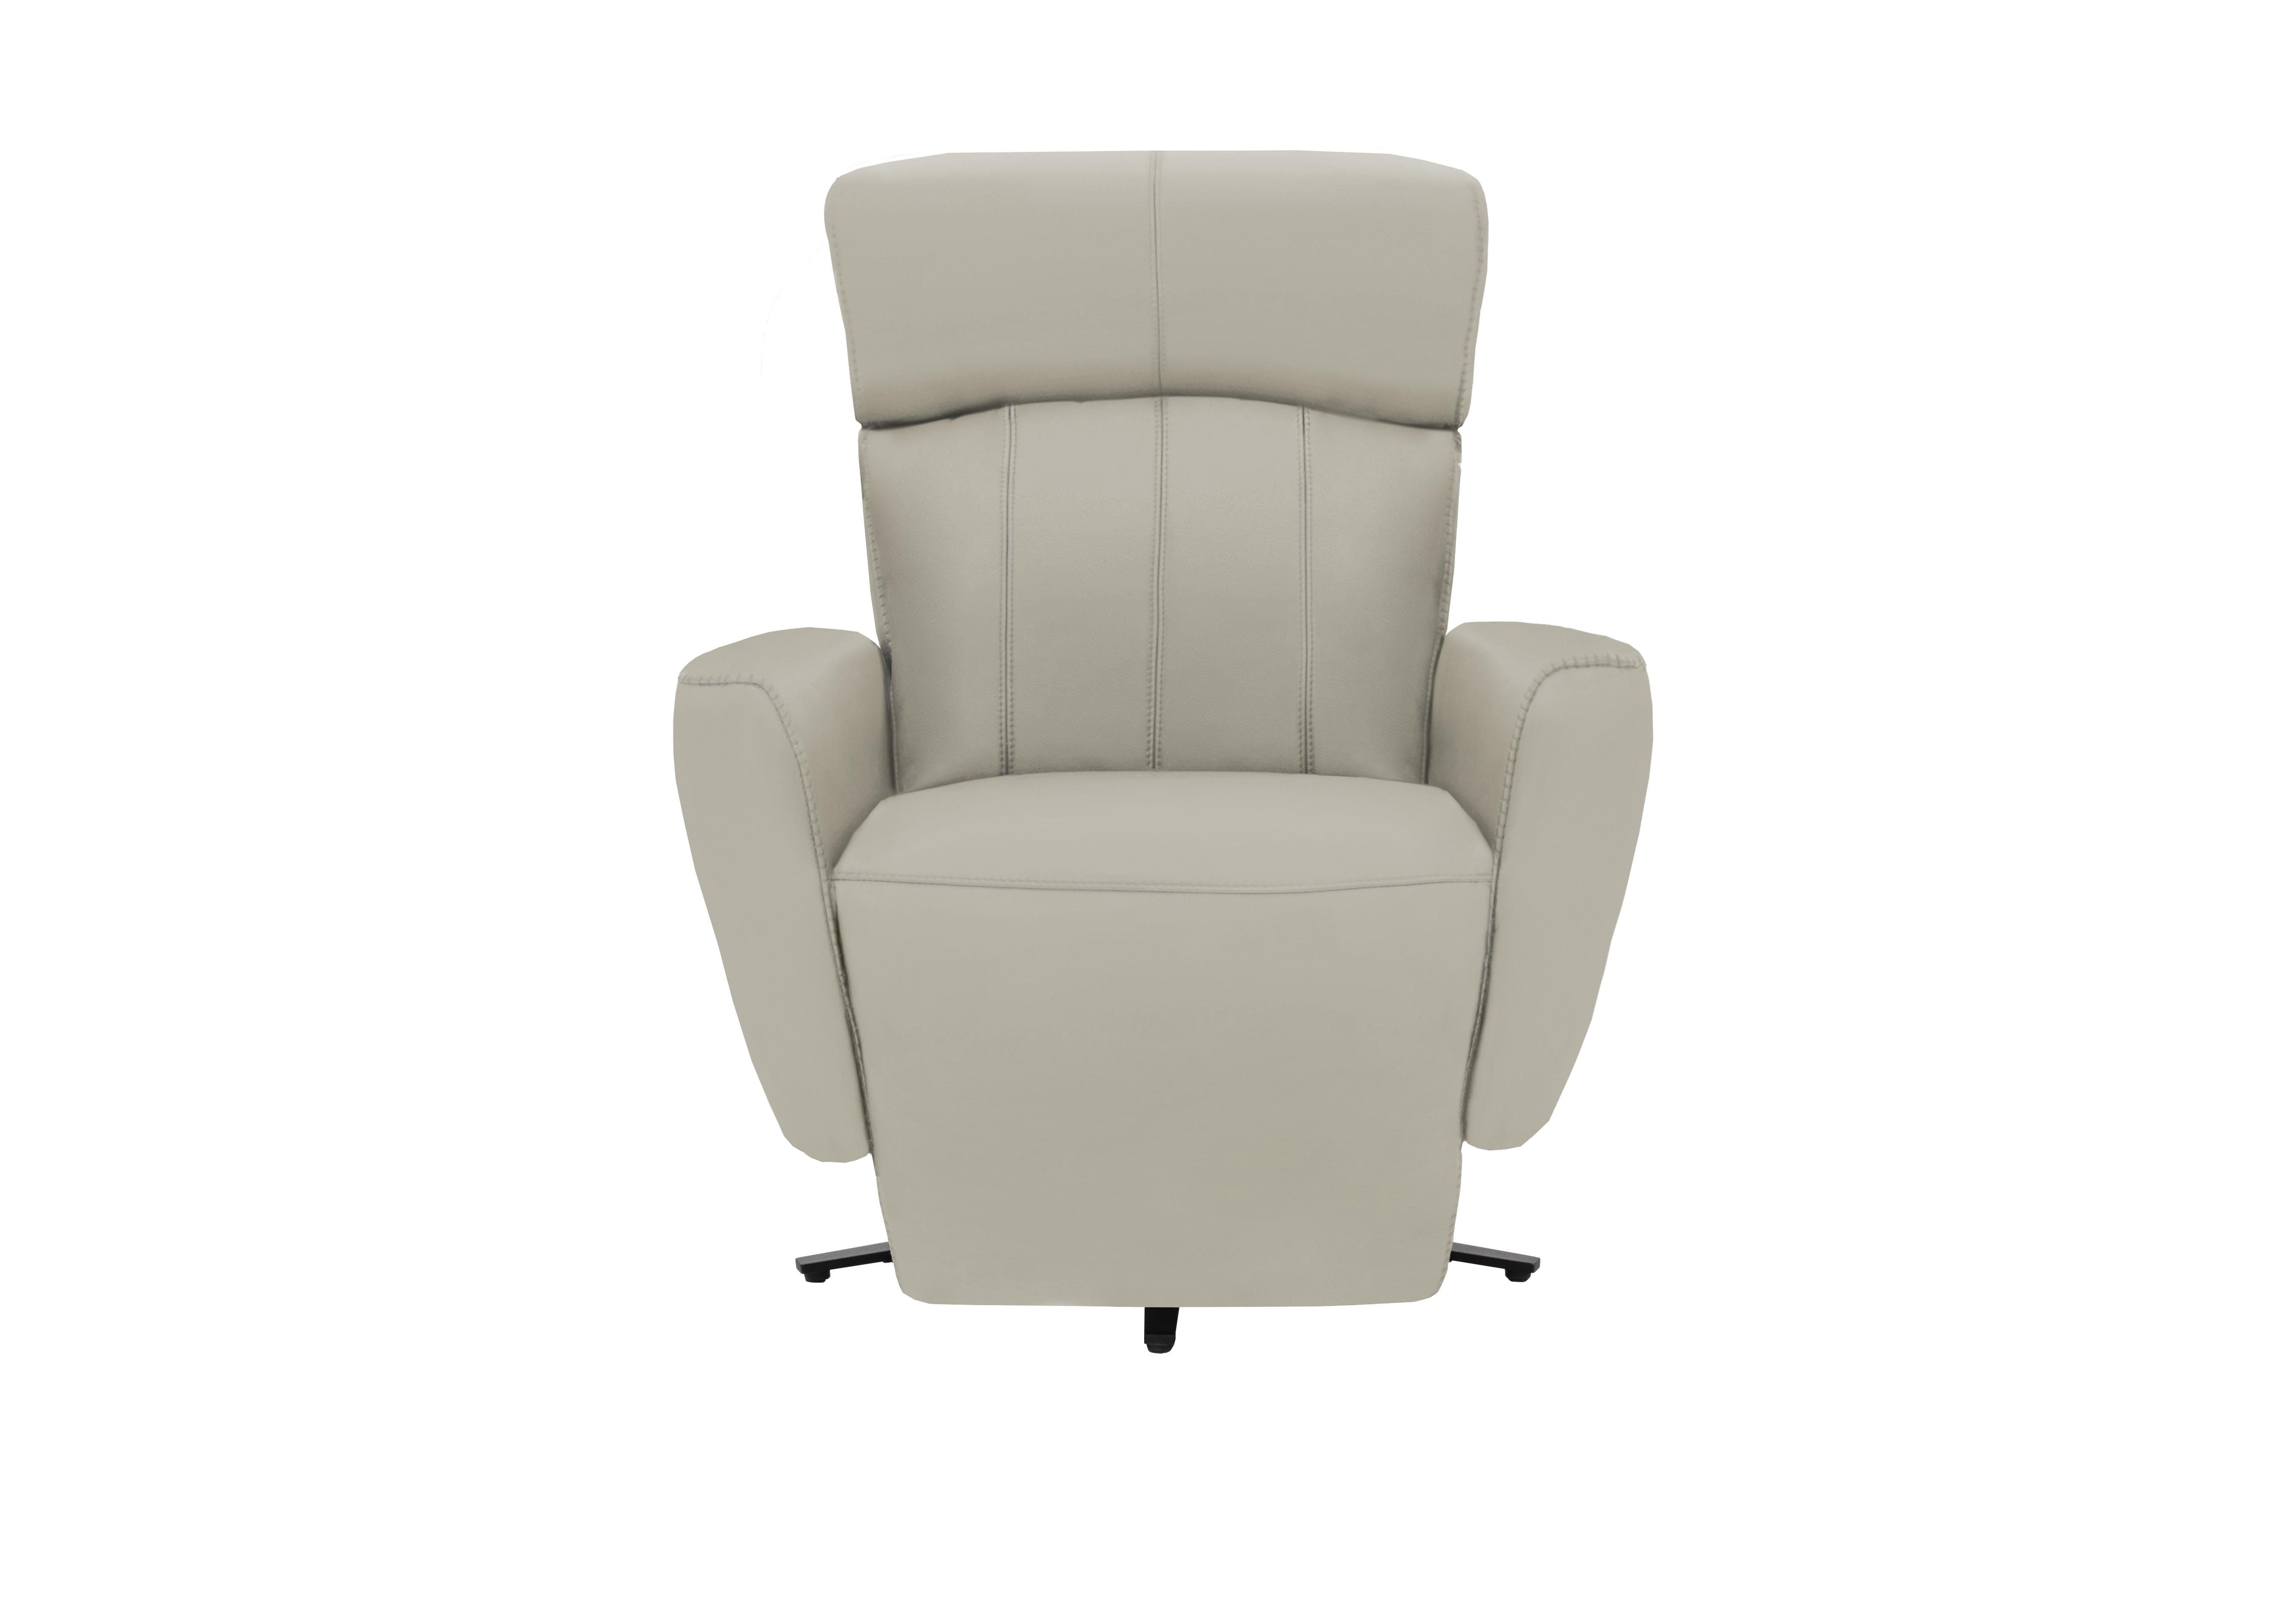 World Of Leather Avalon Leather Swivel Armchair   Only One Left!